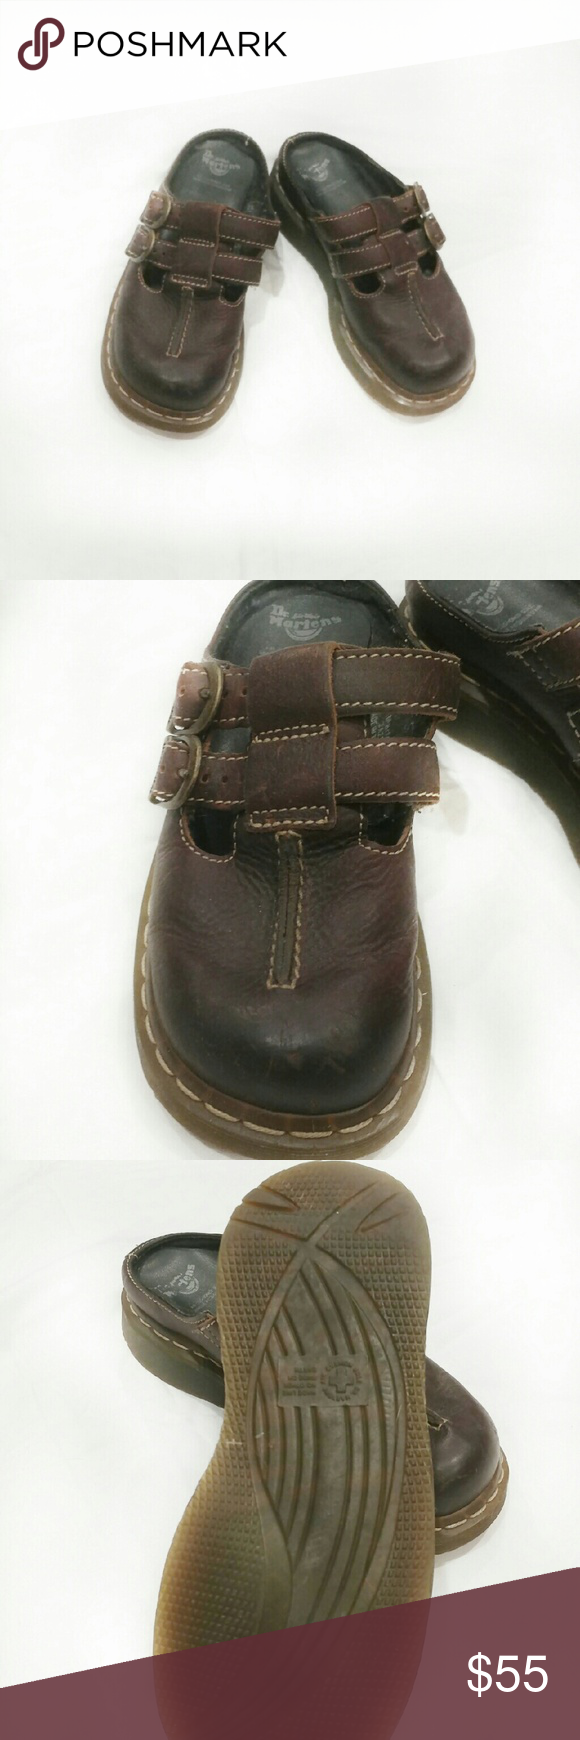 Dr. Martin's Brown Leather Clogs - double buckles - adjustable - like new - minor scuffs - will last forever  - adorable! Dr. Martens Shoes Mules & Clogs